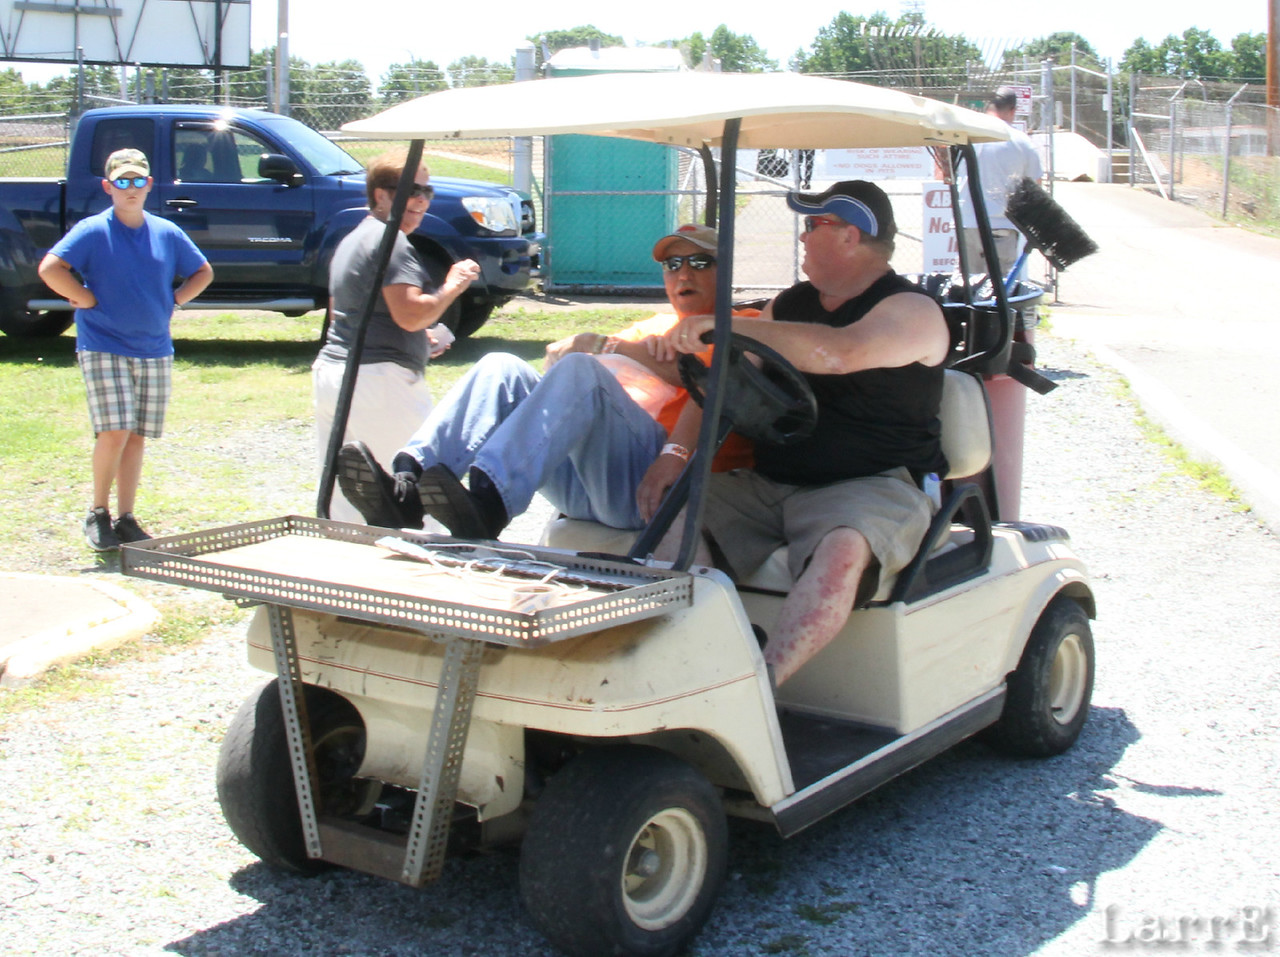 Why do they call them golf carts when they are always at a race track? And why do they call them workers when......better be careful I may want to come back here.